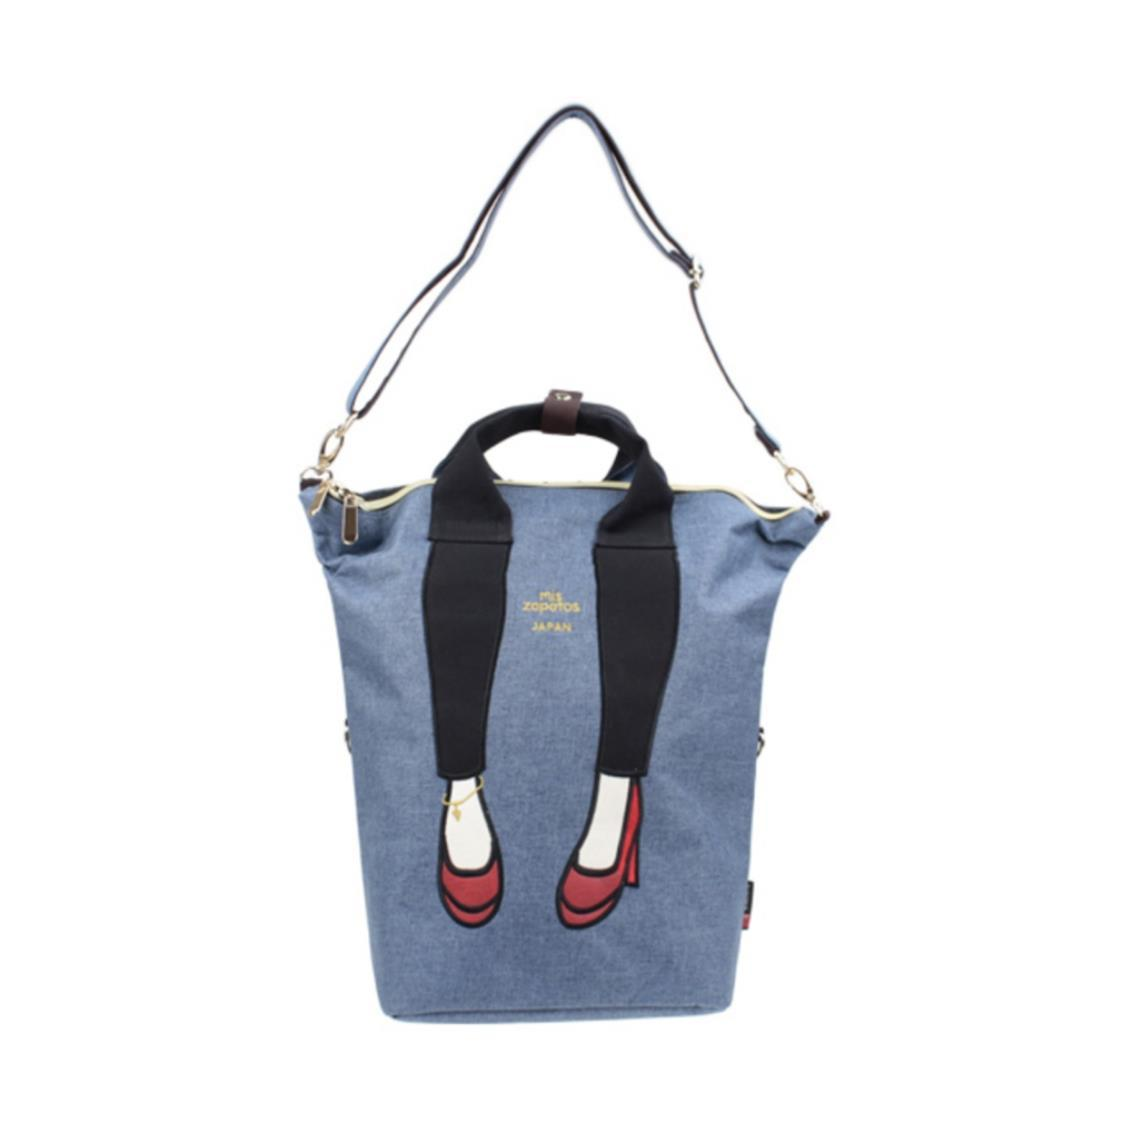 3-Way Jeans with High Heels Backpack Exclusive In Singapore Navy